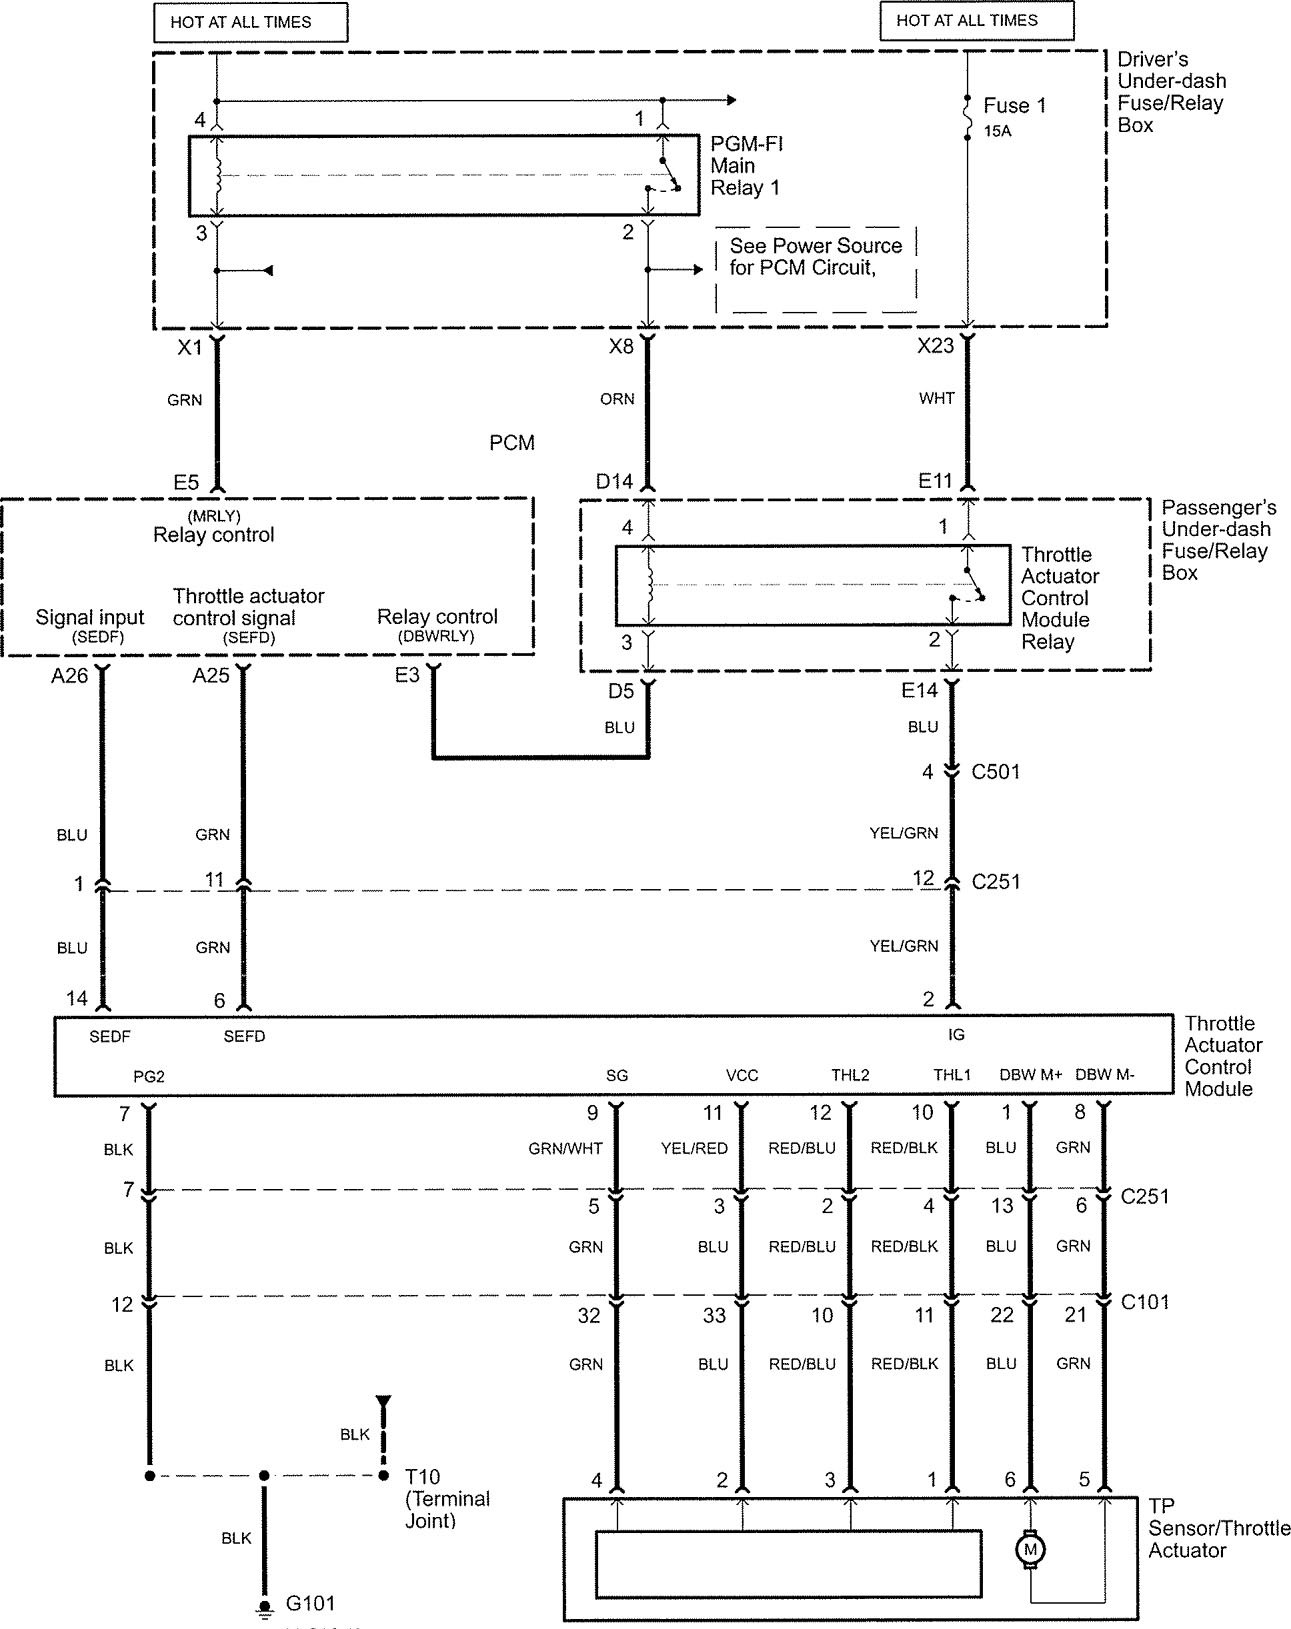 Exelent samsung washer wiring diagram photo electrical and wiring famous smart car wiring diagram gift best images for wiring swarovskicordoba Gallery